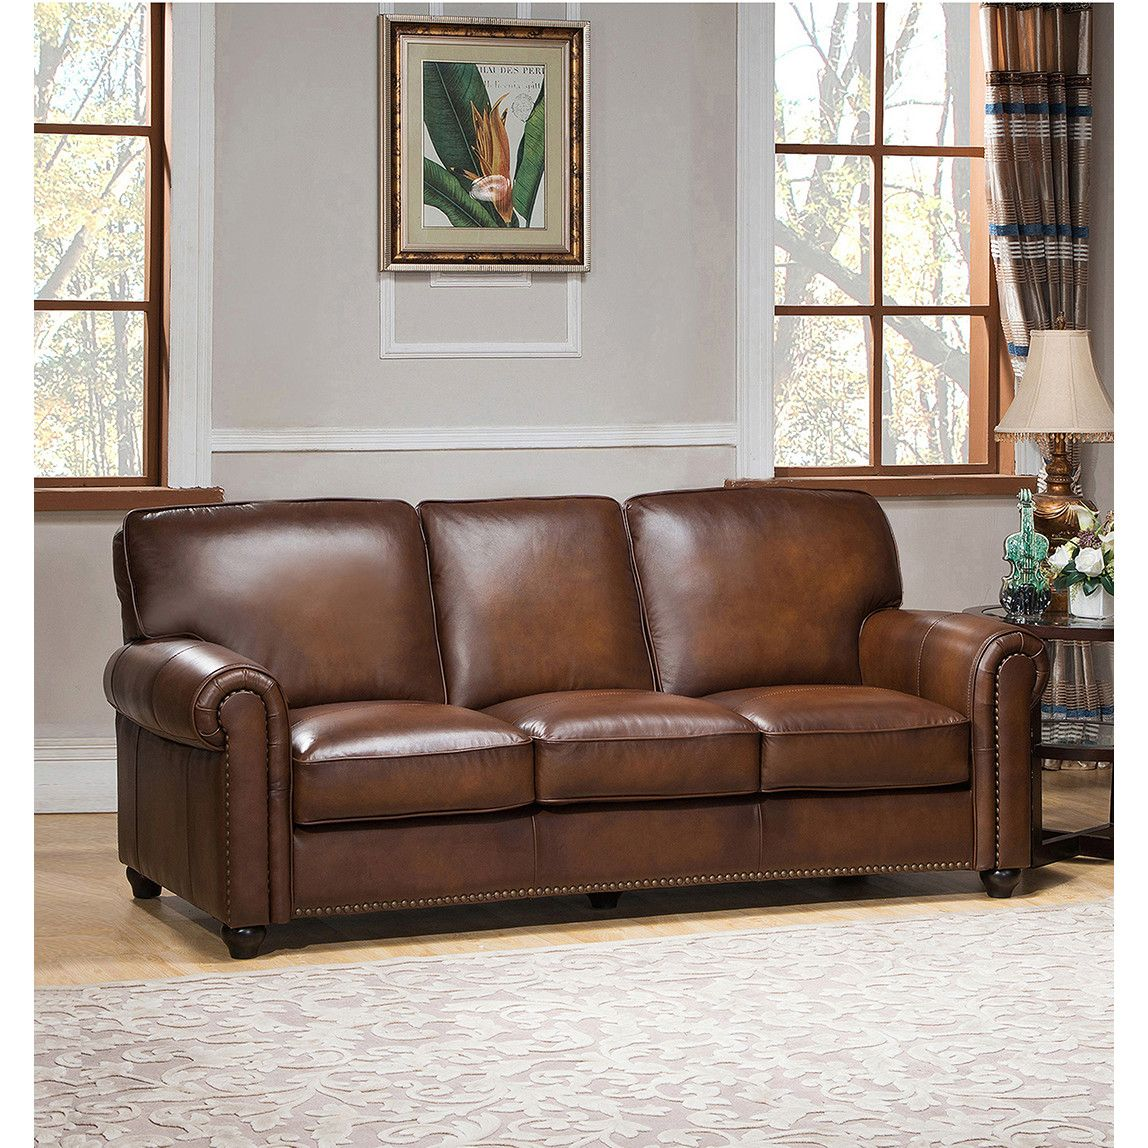 Amax Aspen Leather Sofa 2250